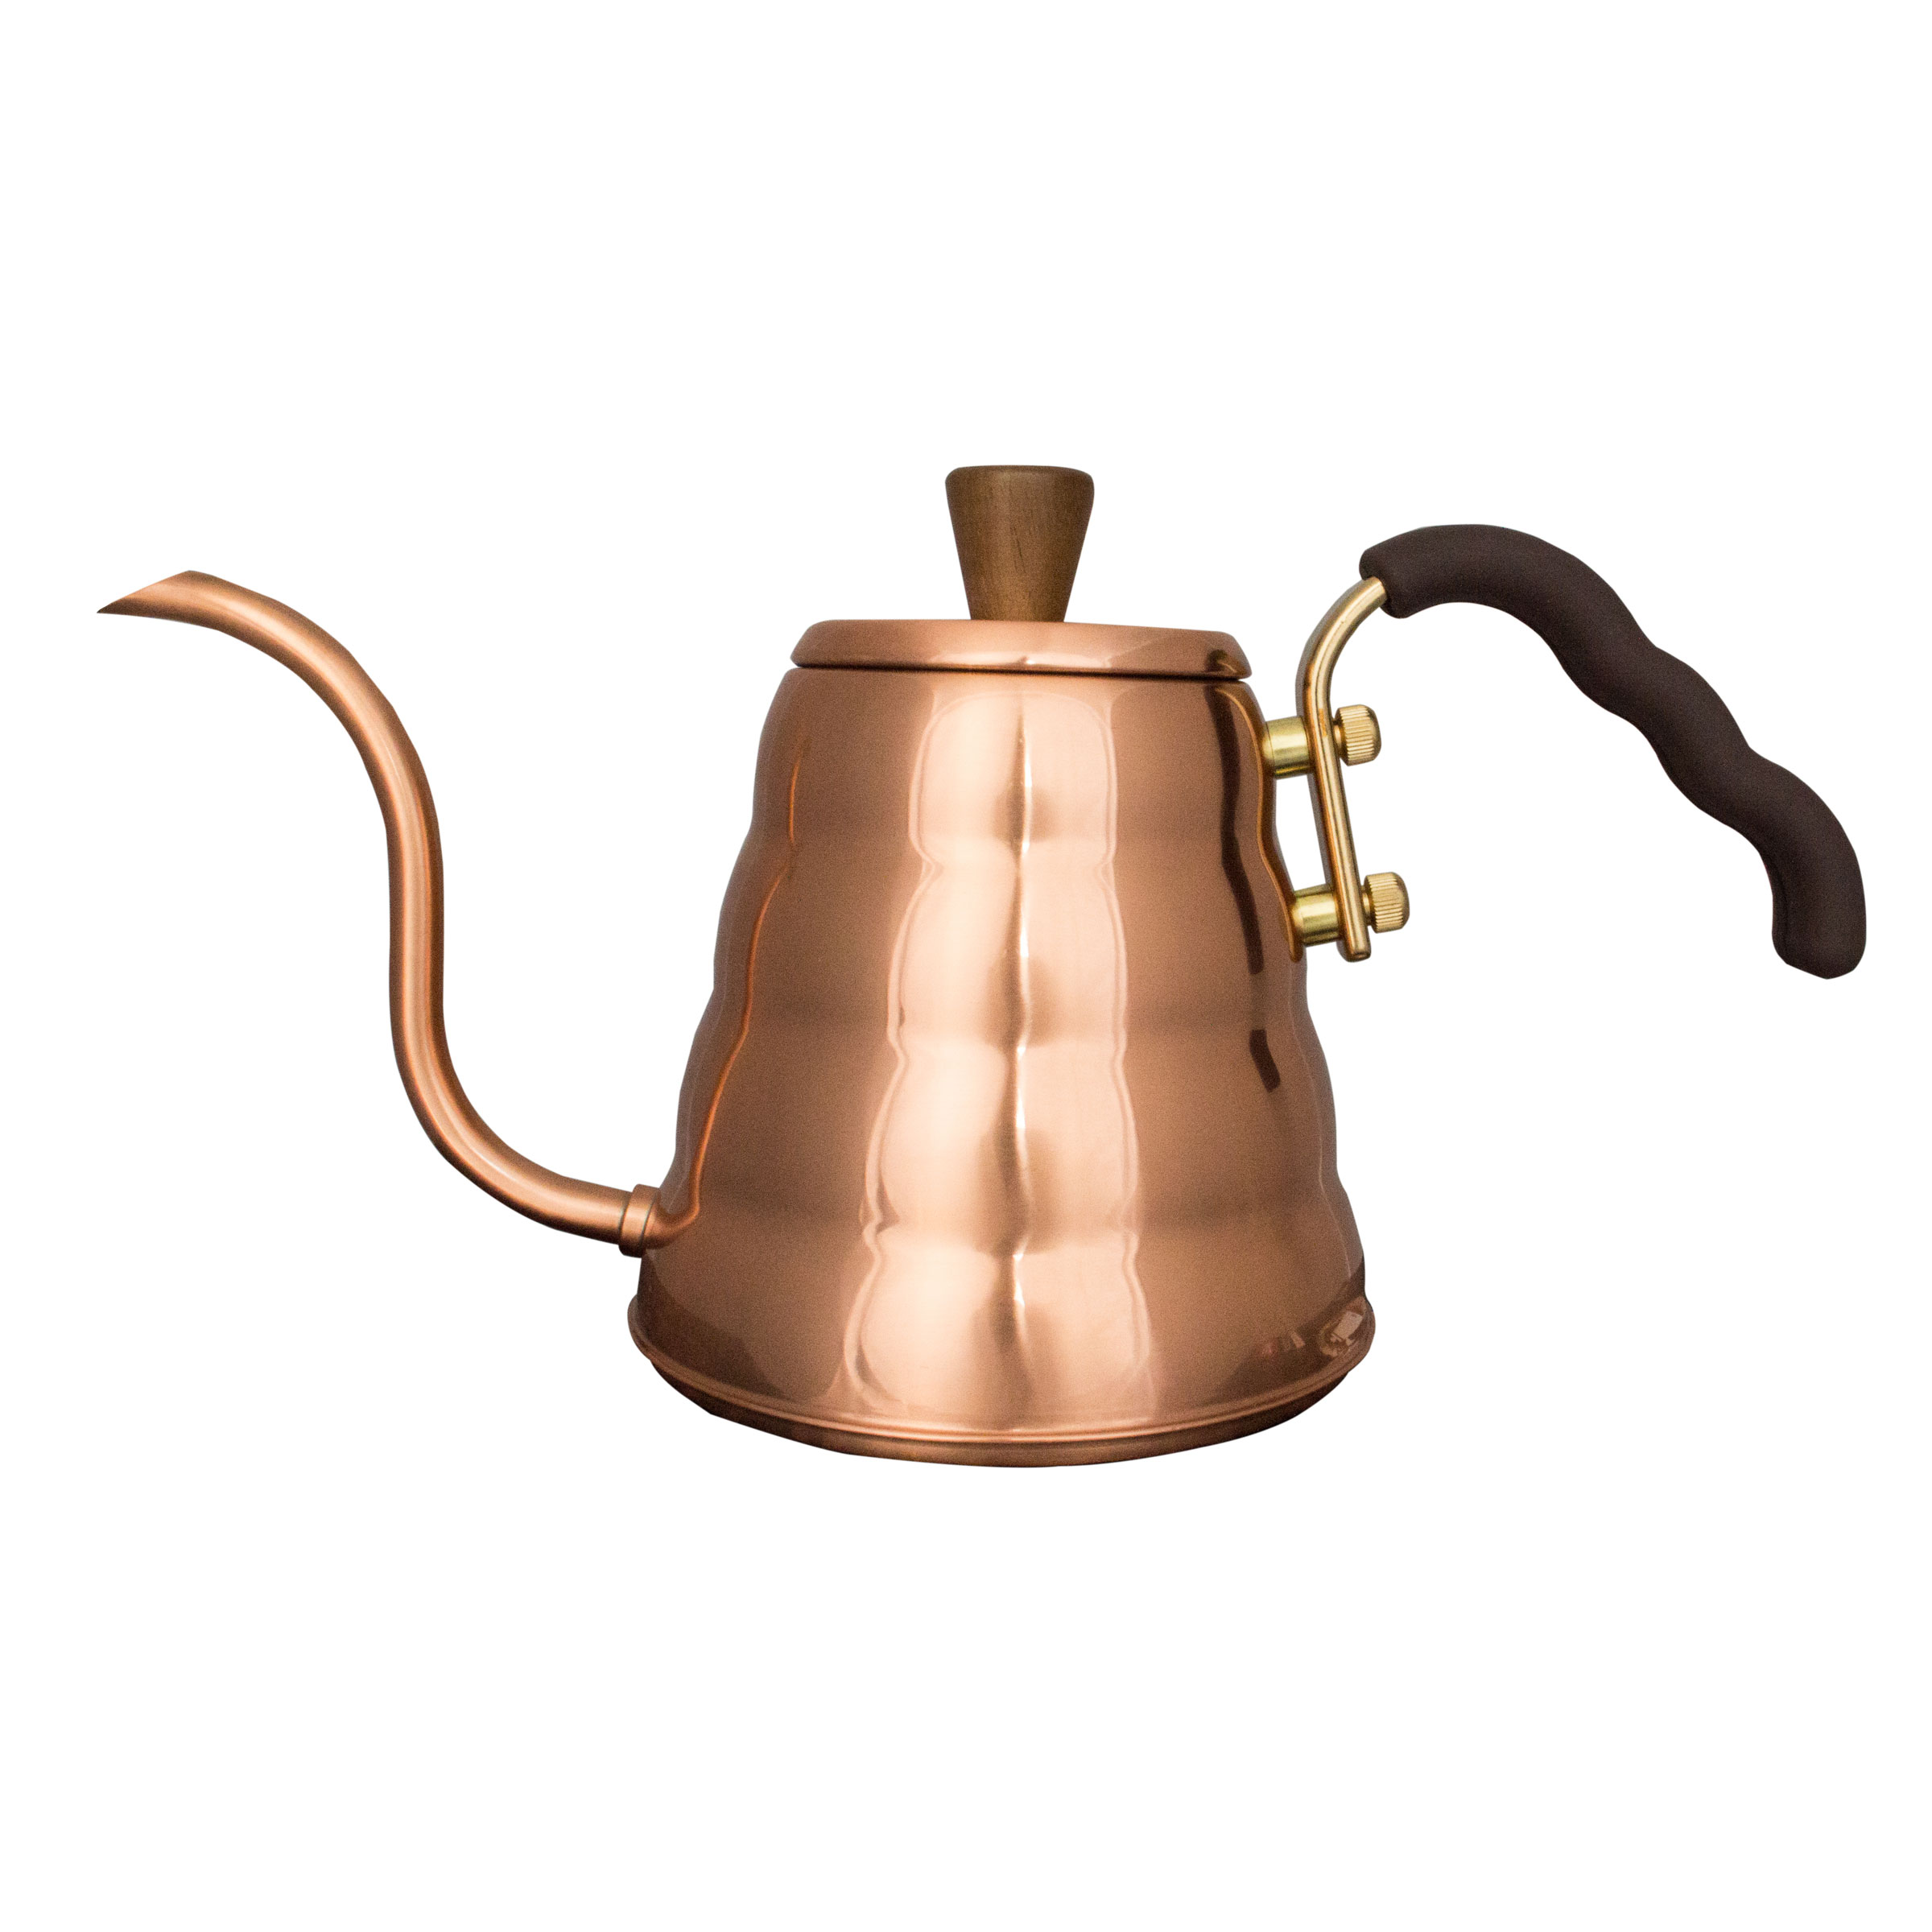 Picture Merchandise - Hario V60 Drip Kettle Buono Copper